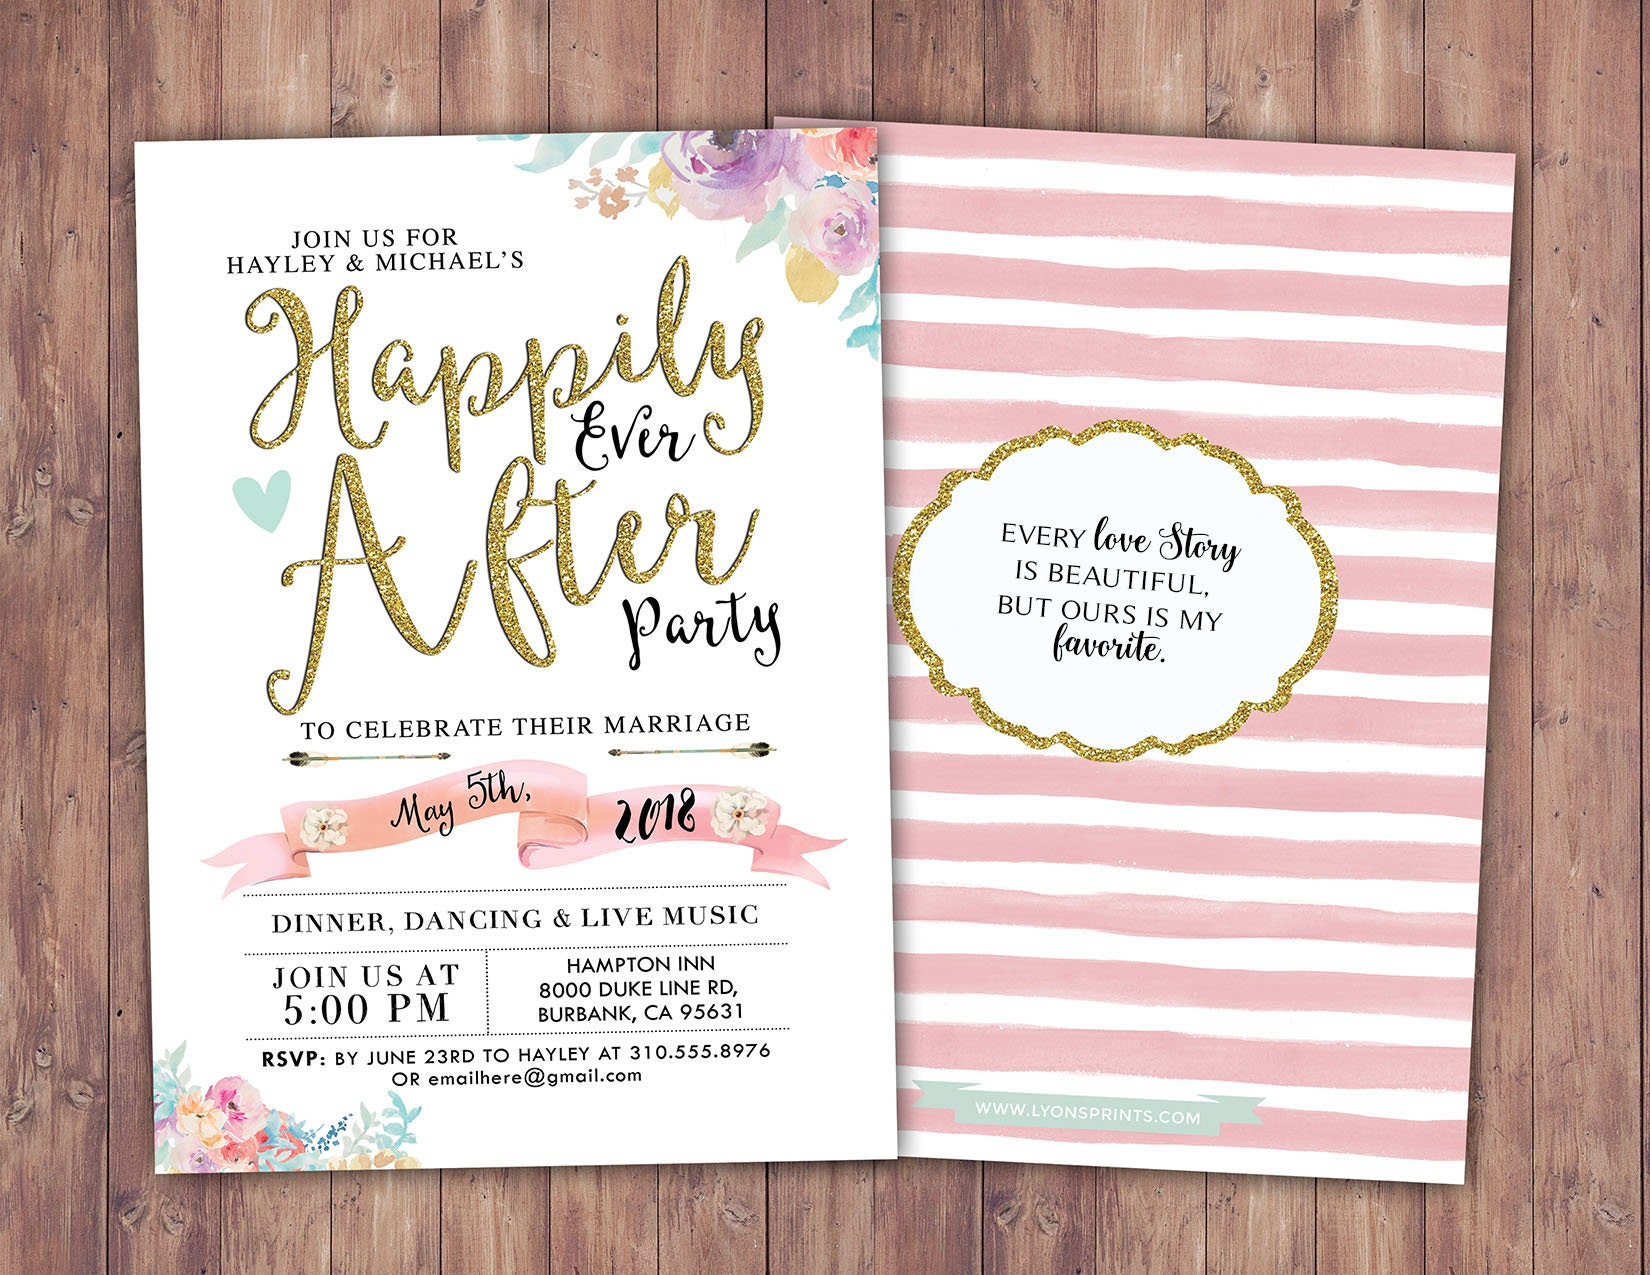 Happily ever after invitation, BOHO wedding shower Invitation ...